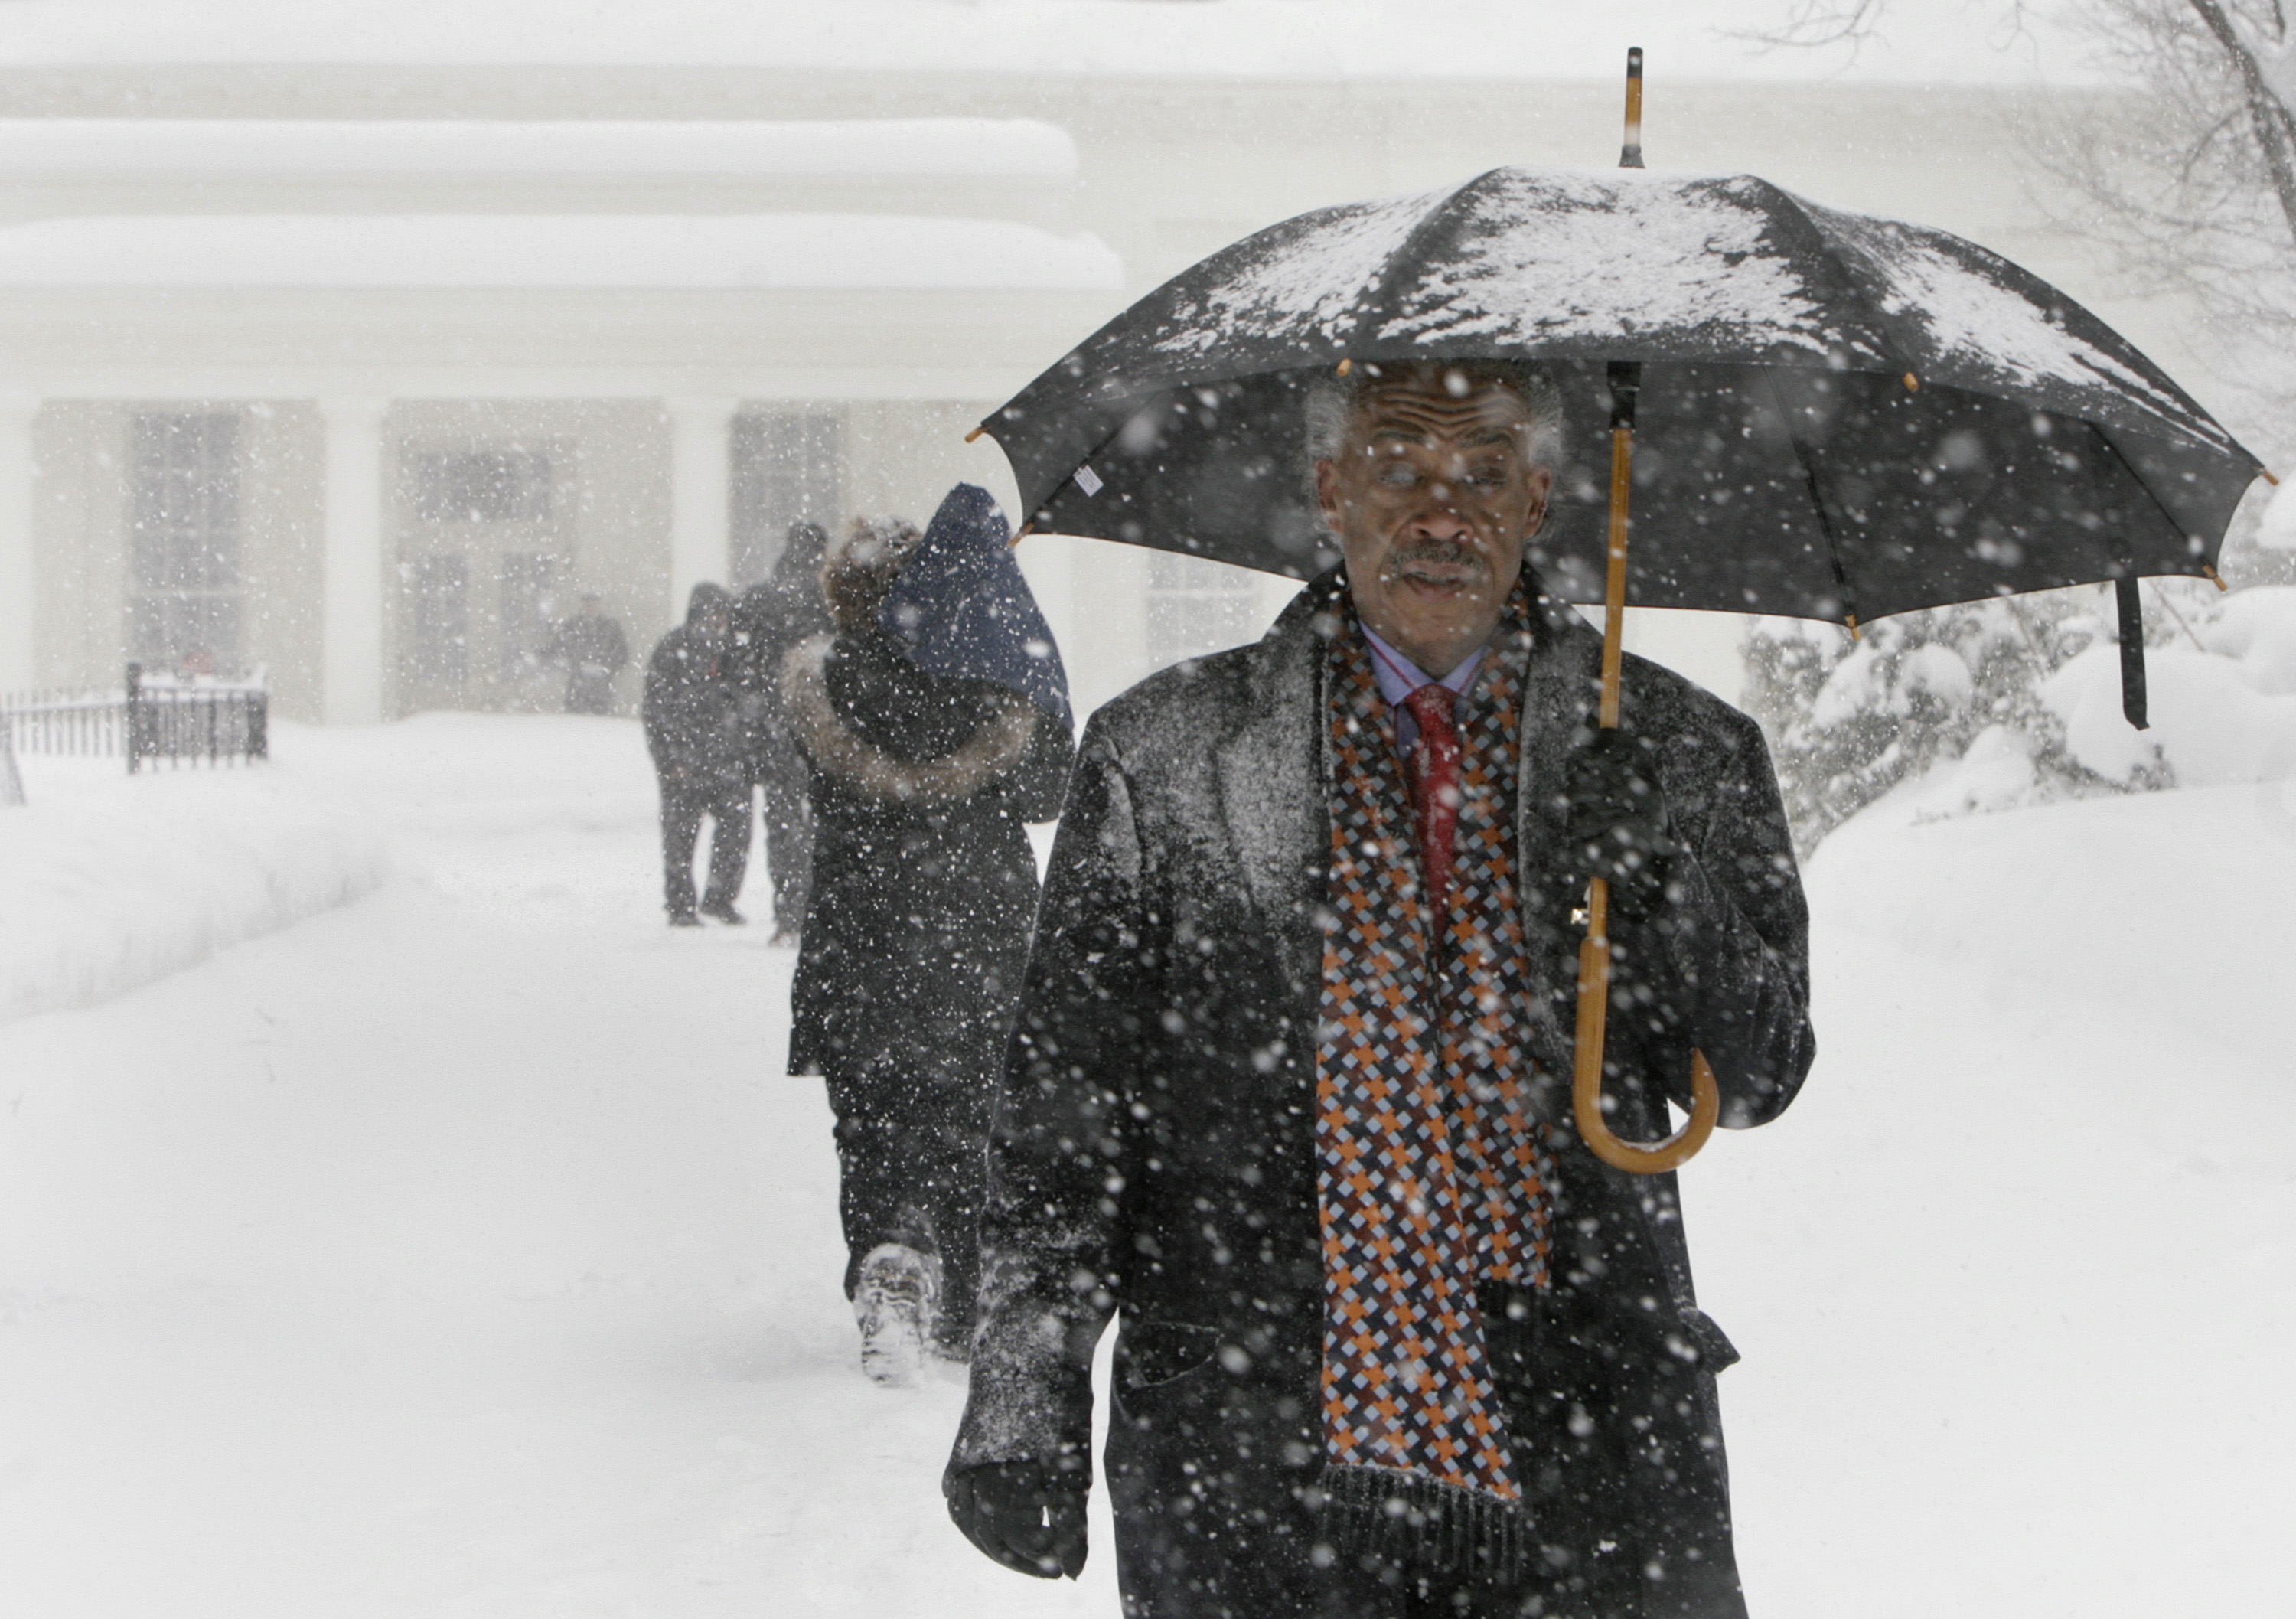 The Rev. Al Sharpton (C), president and founder of the National Action Network, departs the White House following a meeting with President Barack Obama in Washington on Feb. 10, 2010.